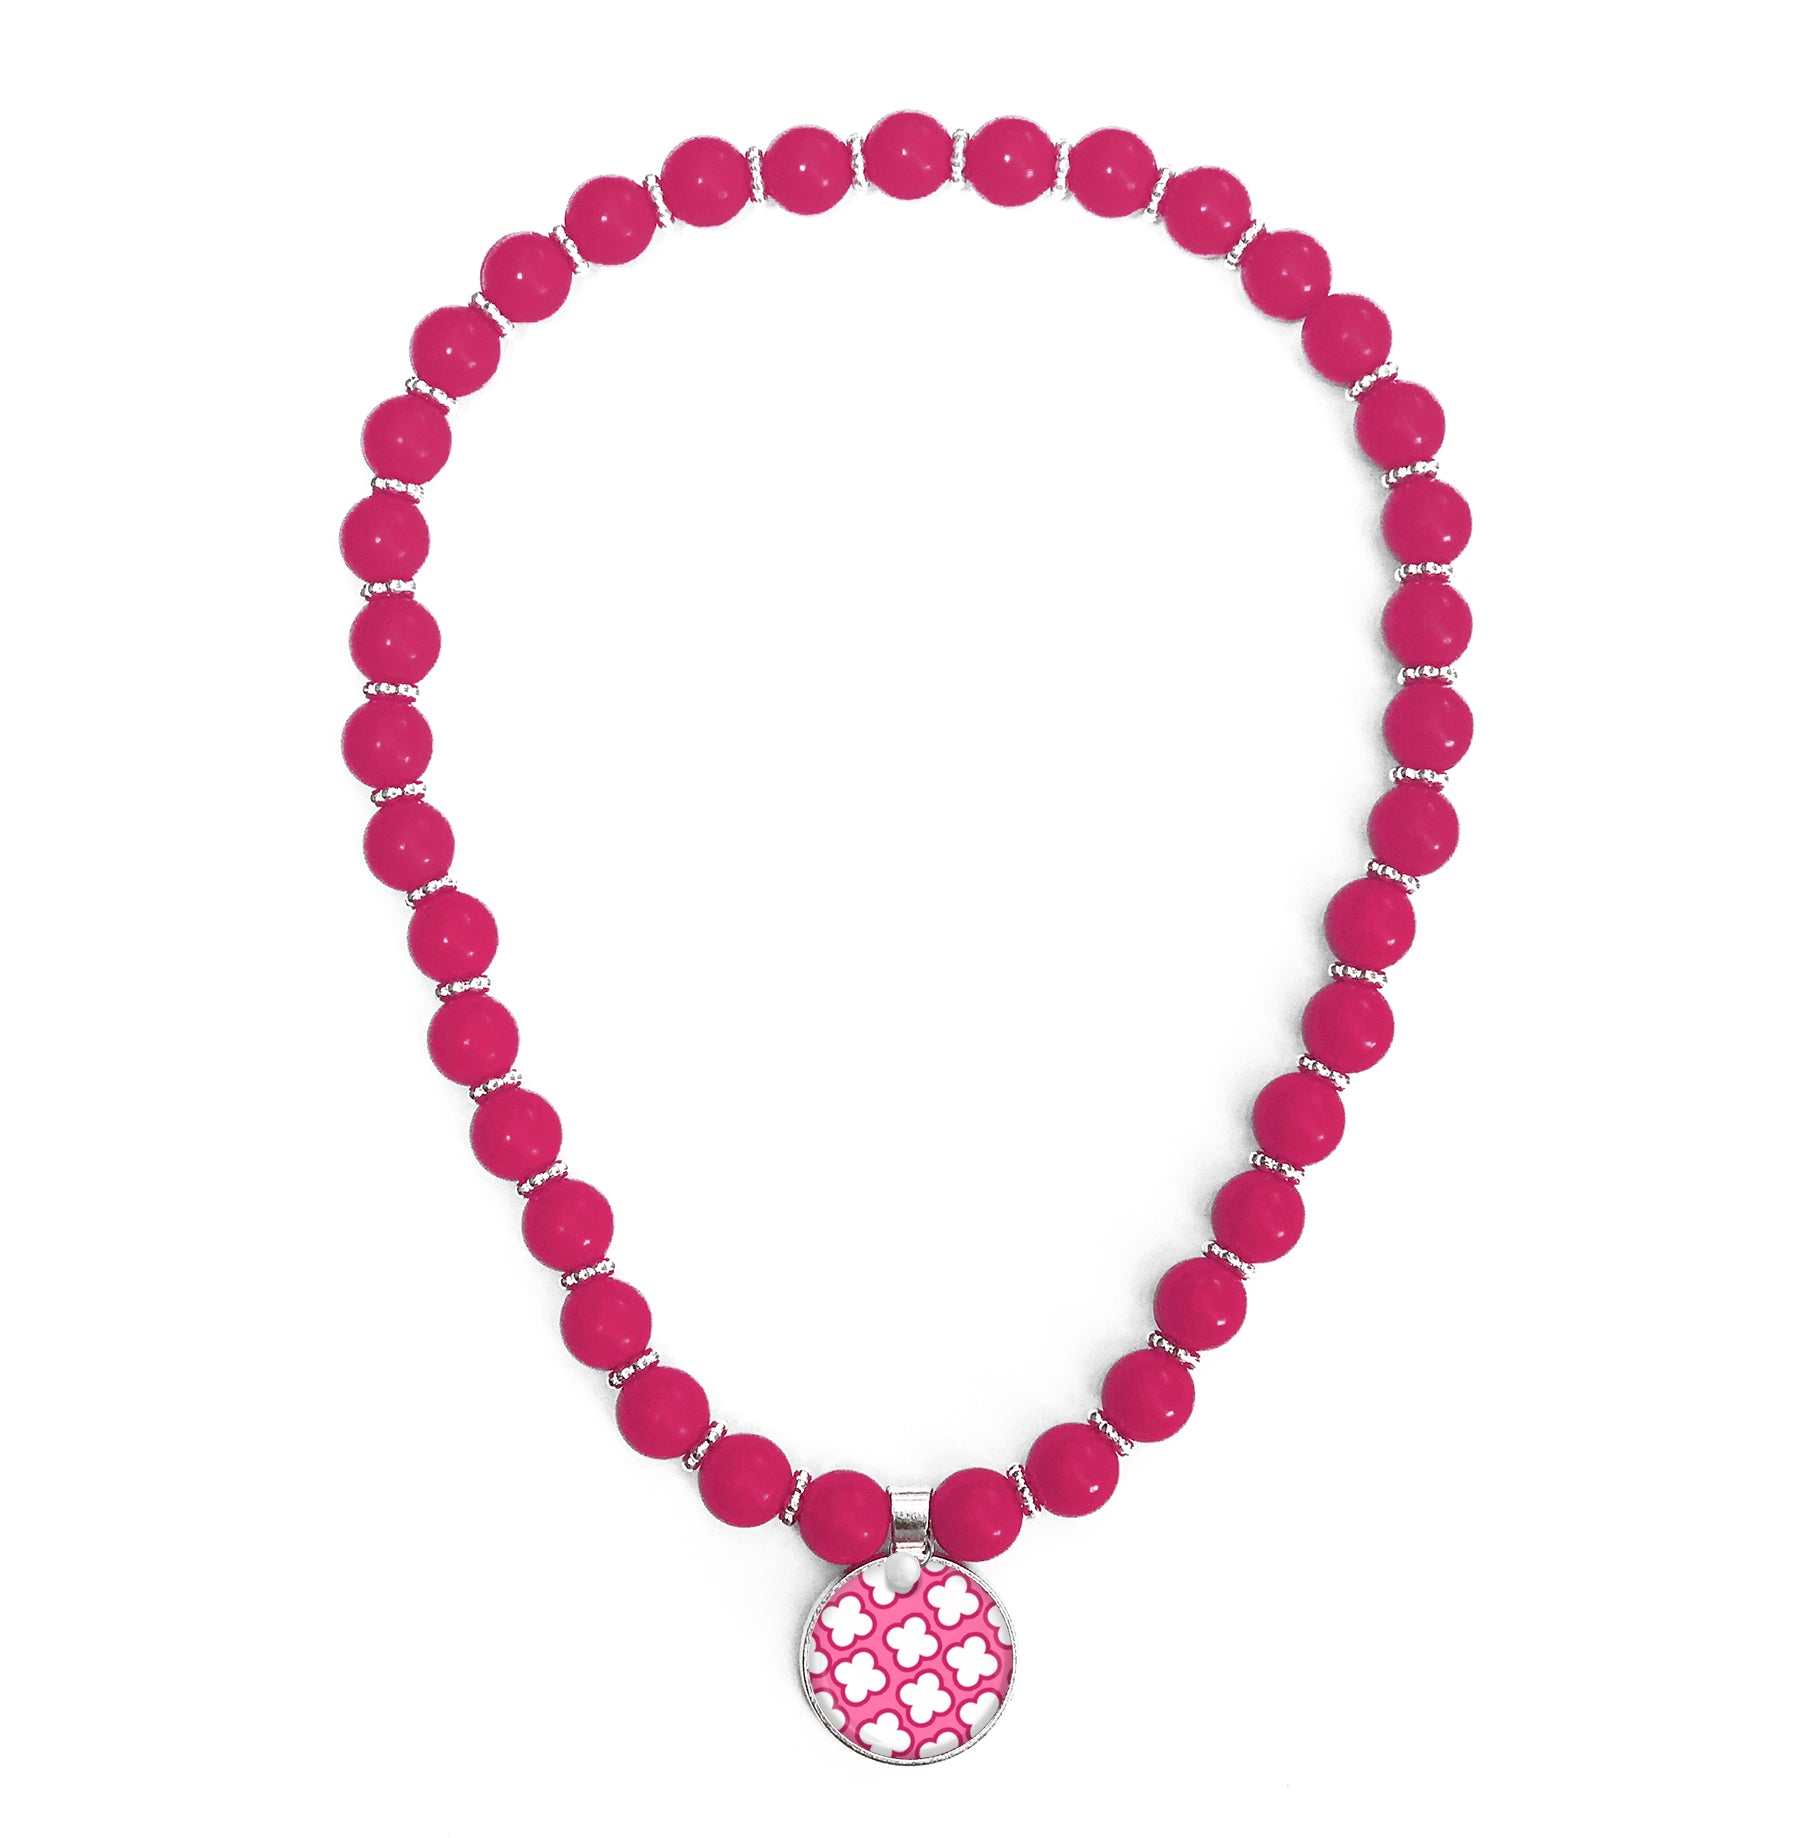 Signature Petal Pink Beaded Necklace